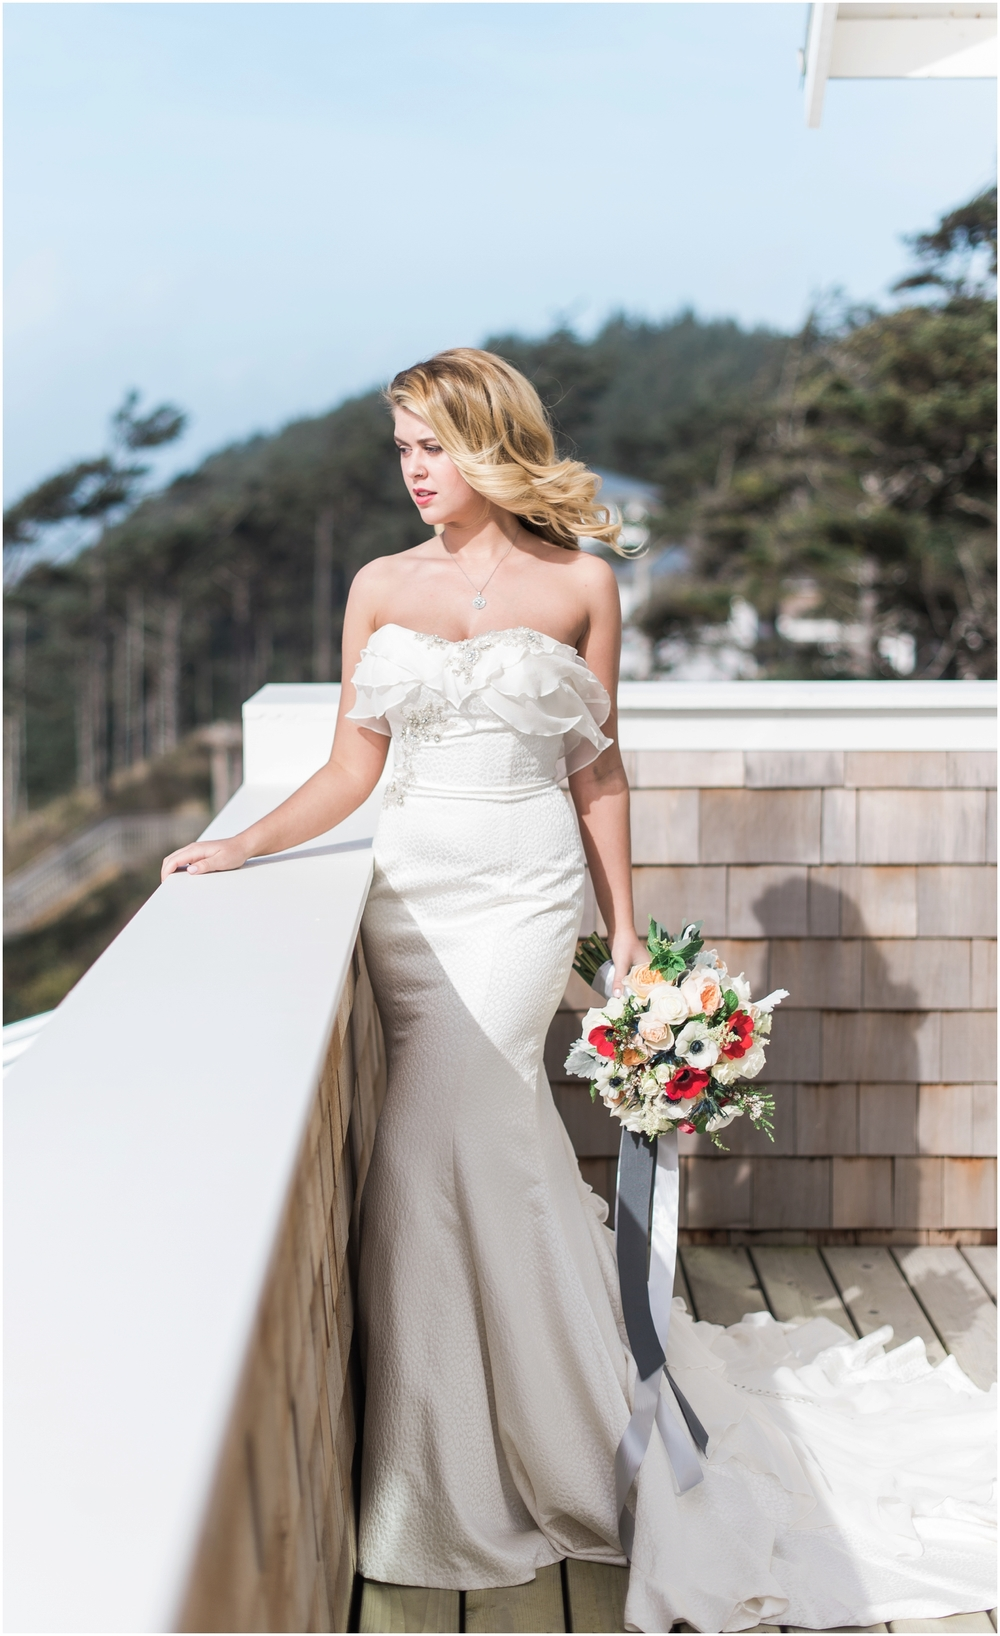 Seabrook nautical fine art wedding. Hair and makeup by Pacific Brides